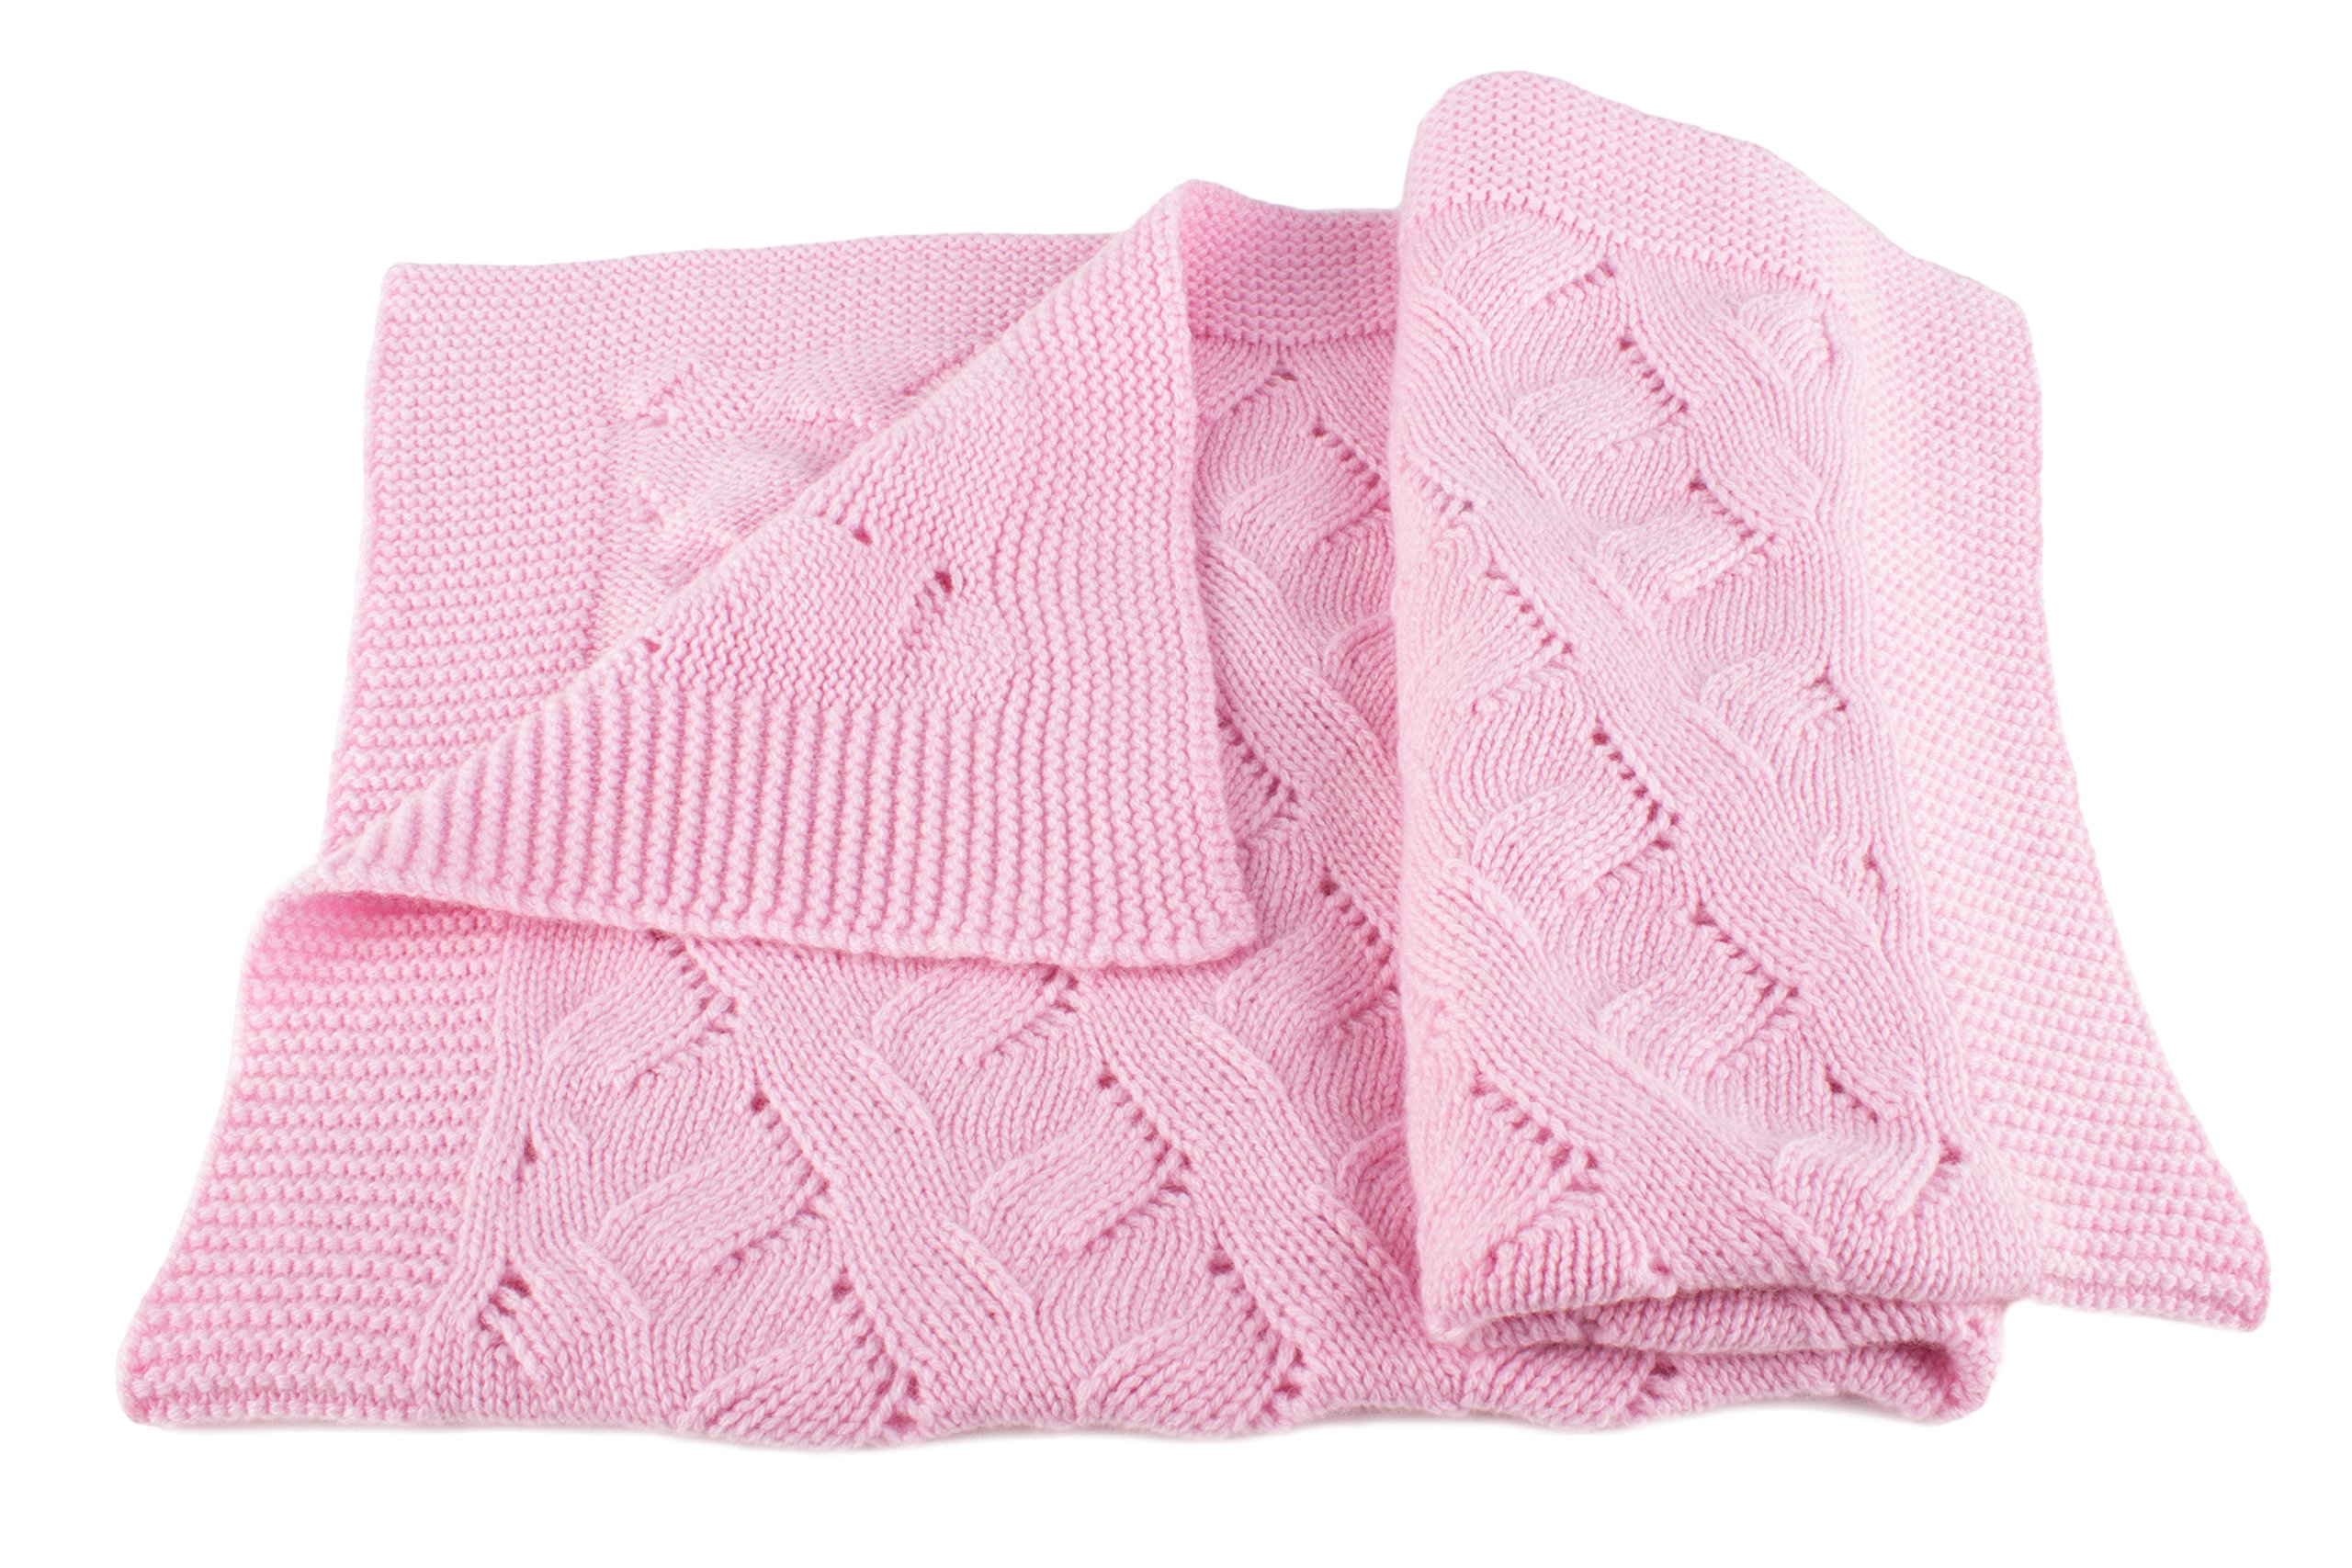 Girls Luxury 100% Cashmere Baby Blanket - 'Baby Pink' - hand made in Scotland by Love Cashmere - RRP $300